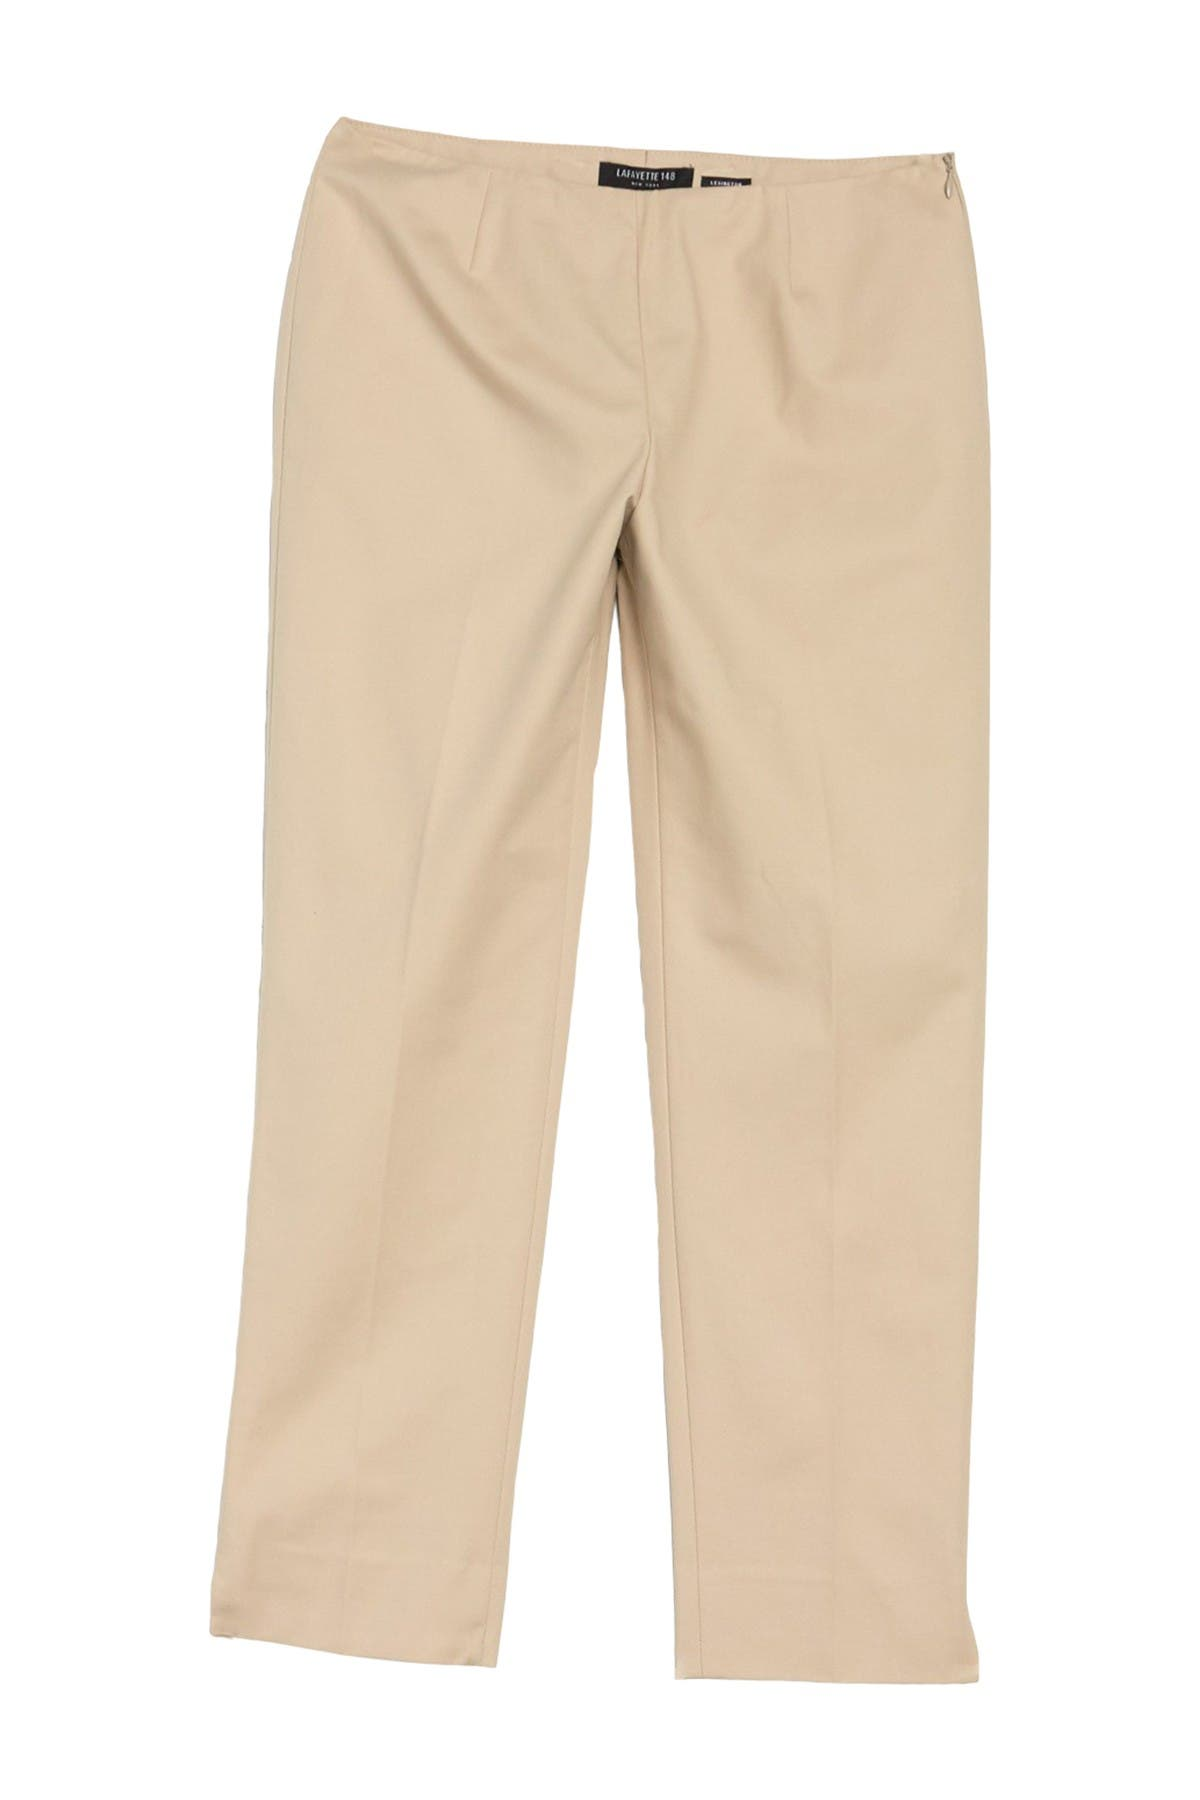 Image of Lafayette 148 New York Cropped Bleeker Pants